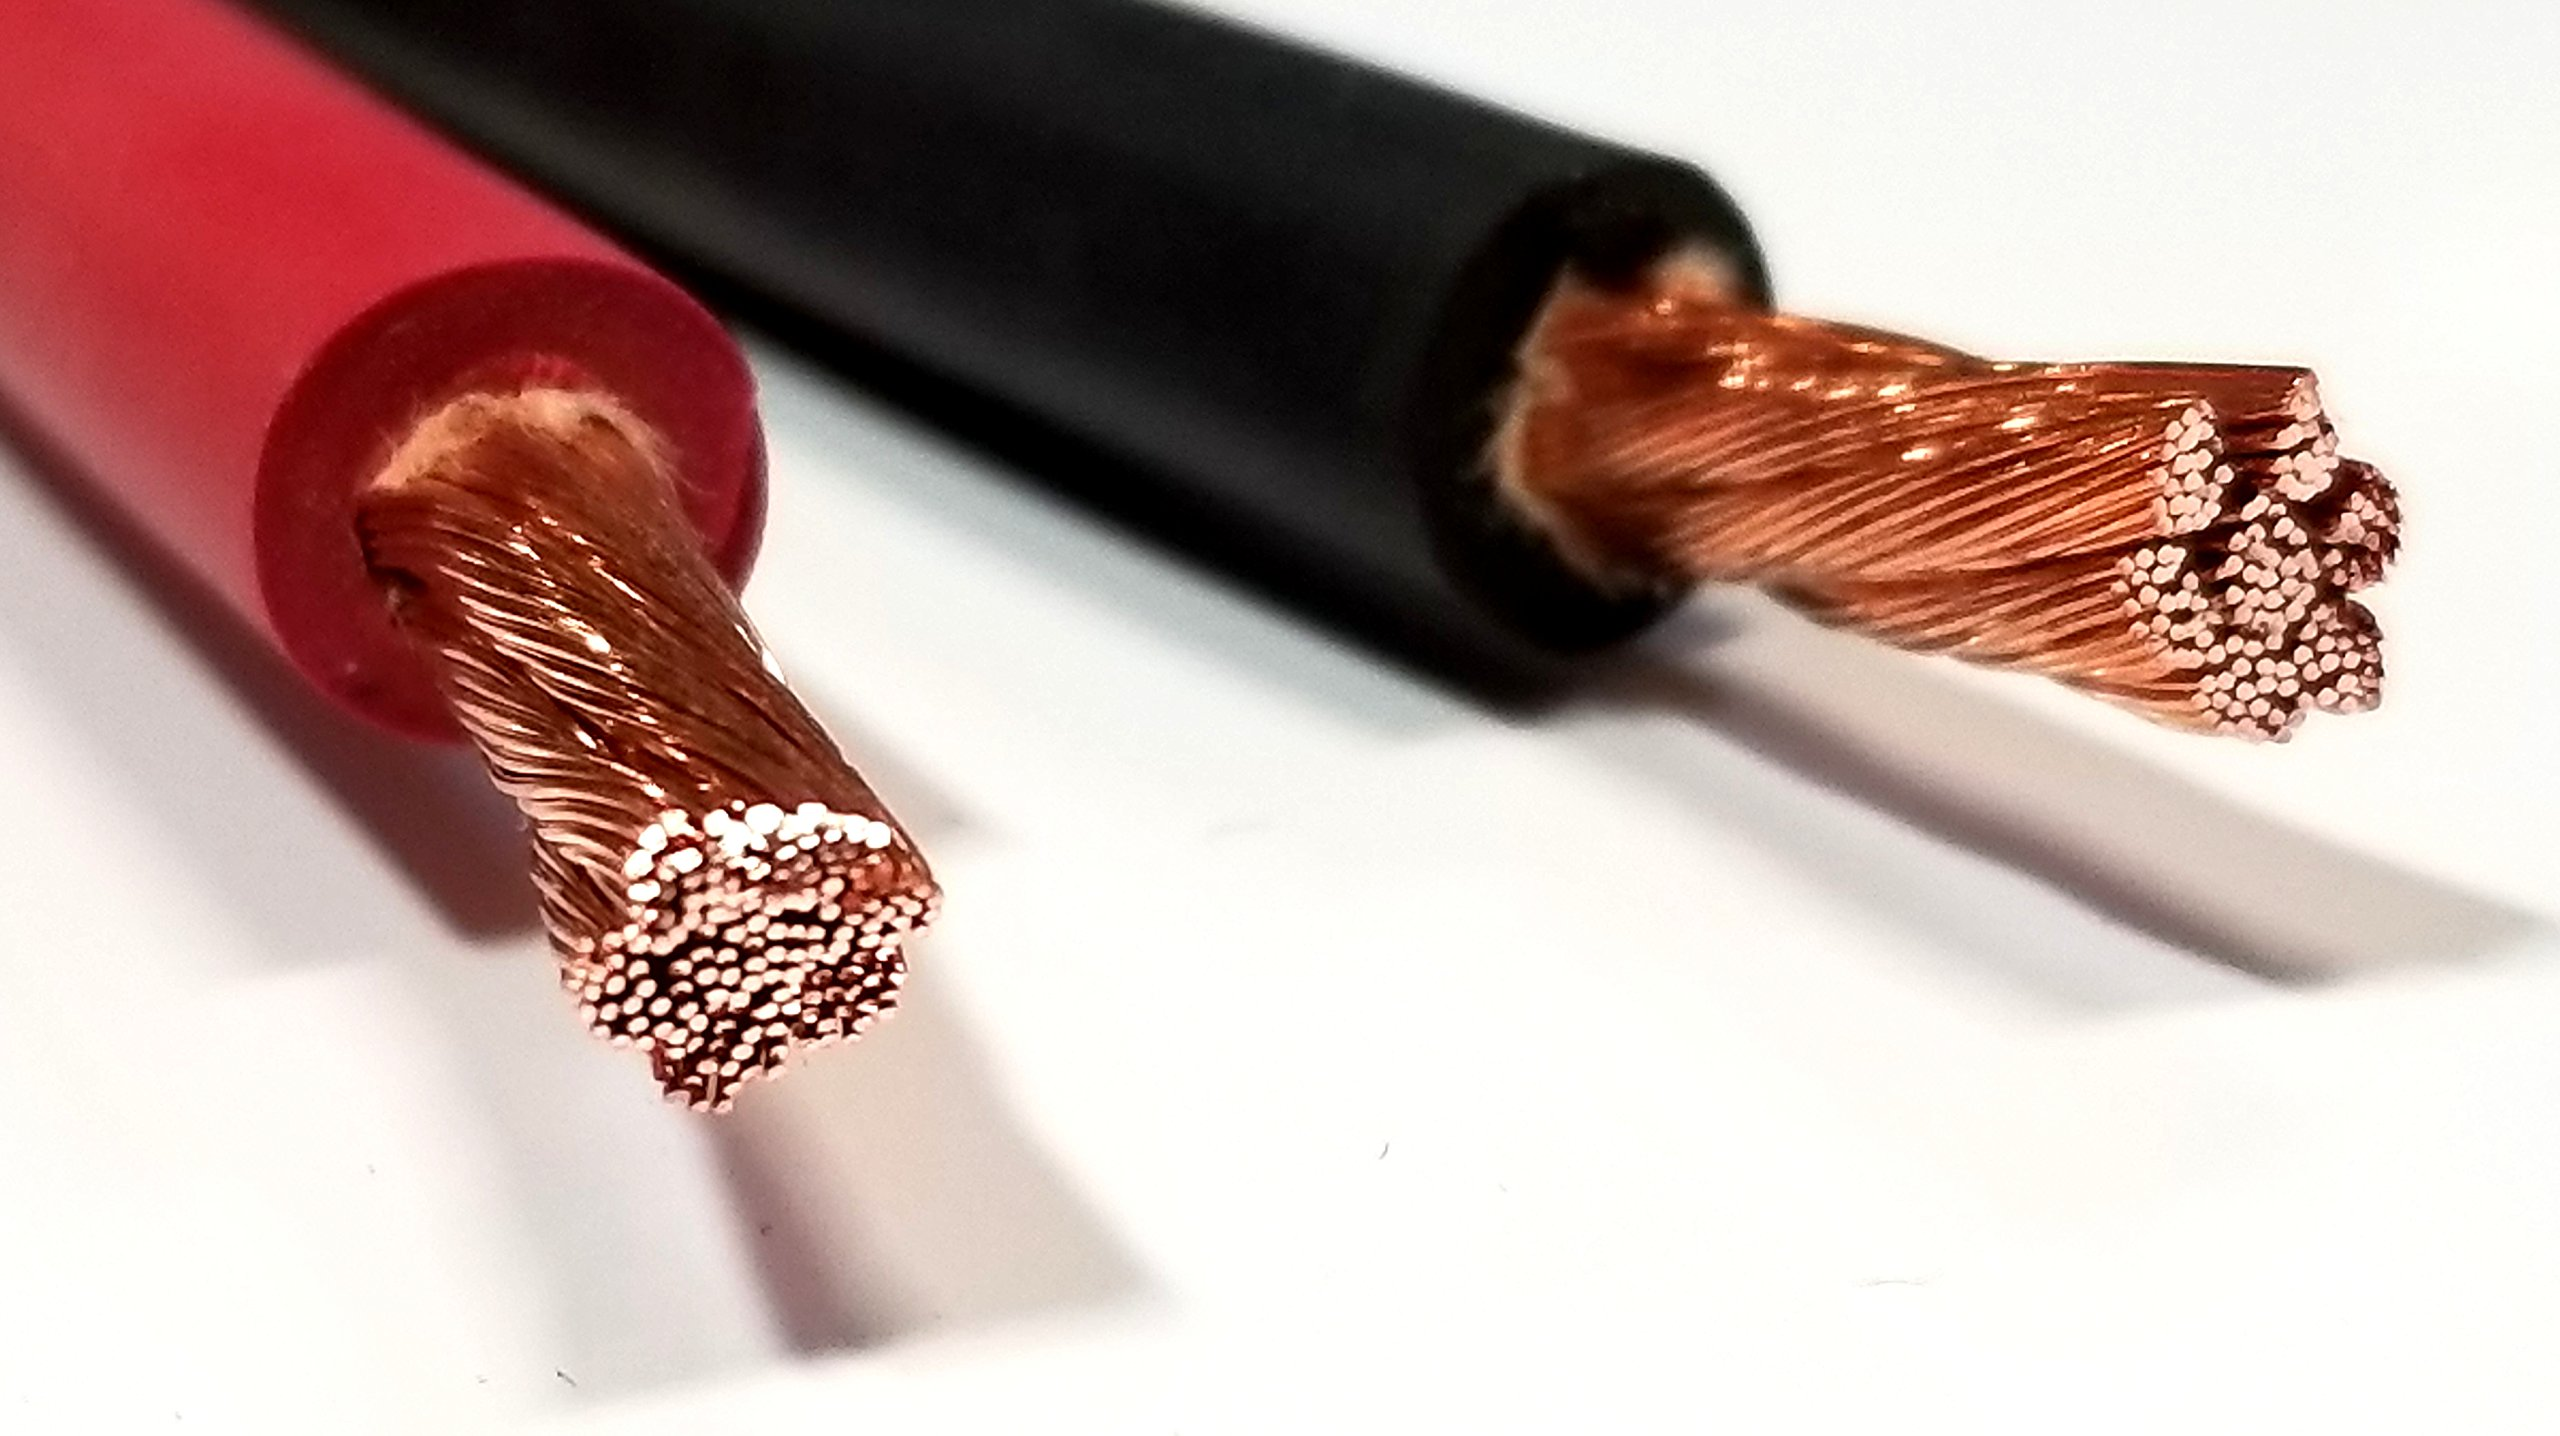 AC/DC WIRE 8 Gauge 8 AWG Welding Battery Pure Copper Flexible Cable Wire - Car, Inverter, RV, Trucks (20 ft Black + 20 ft Red)